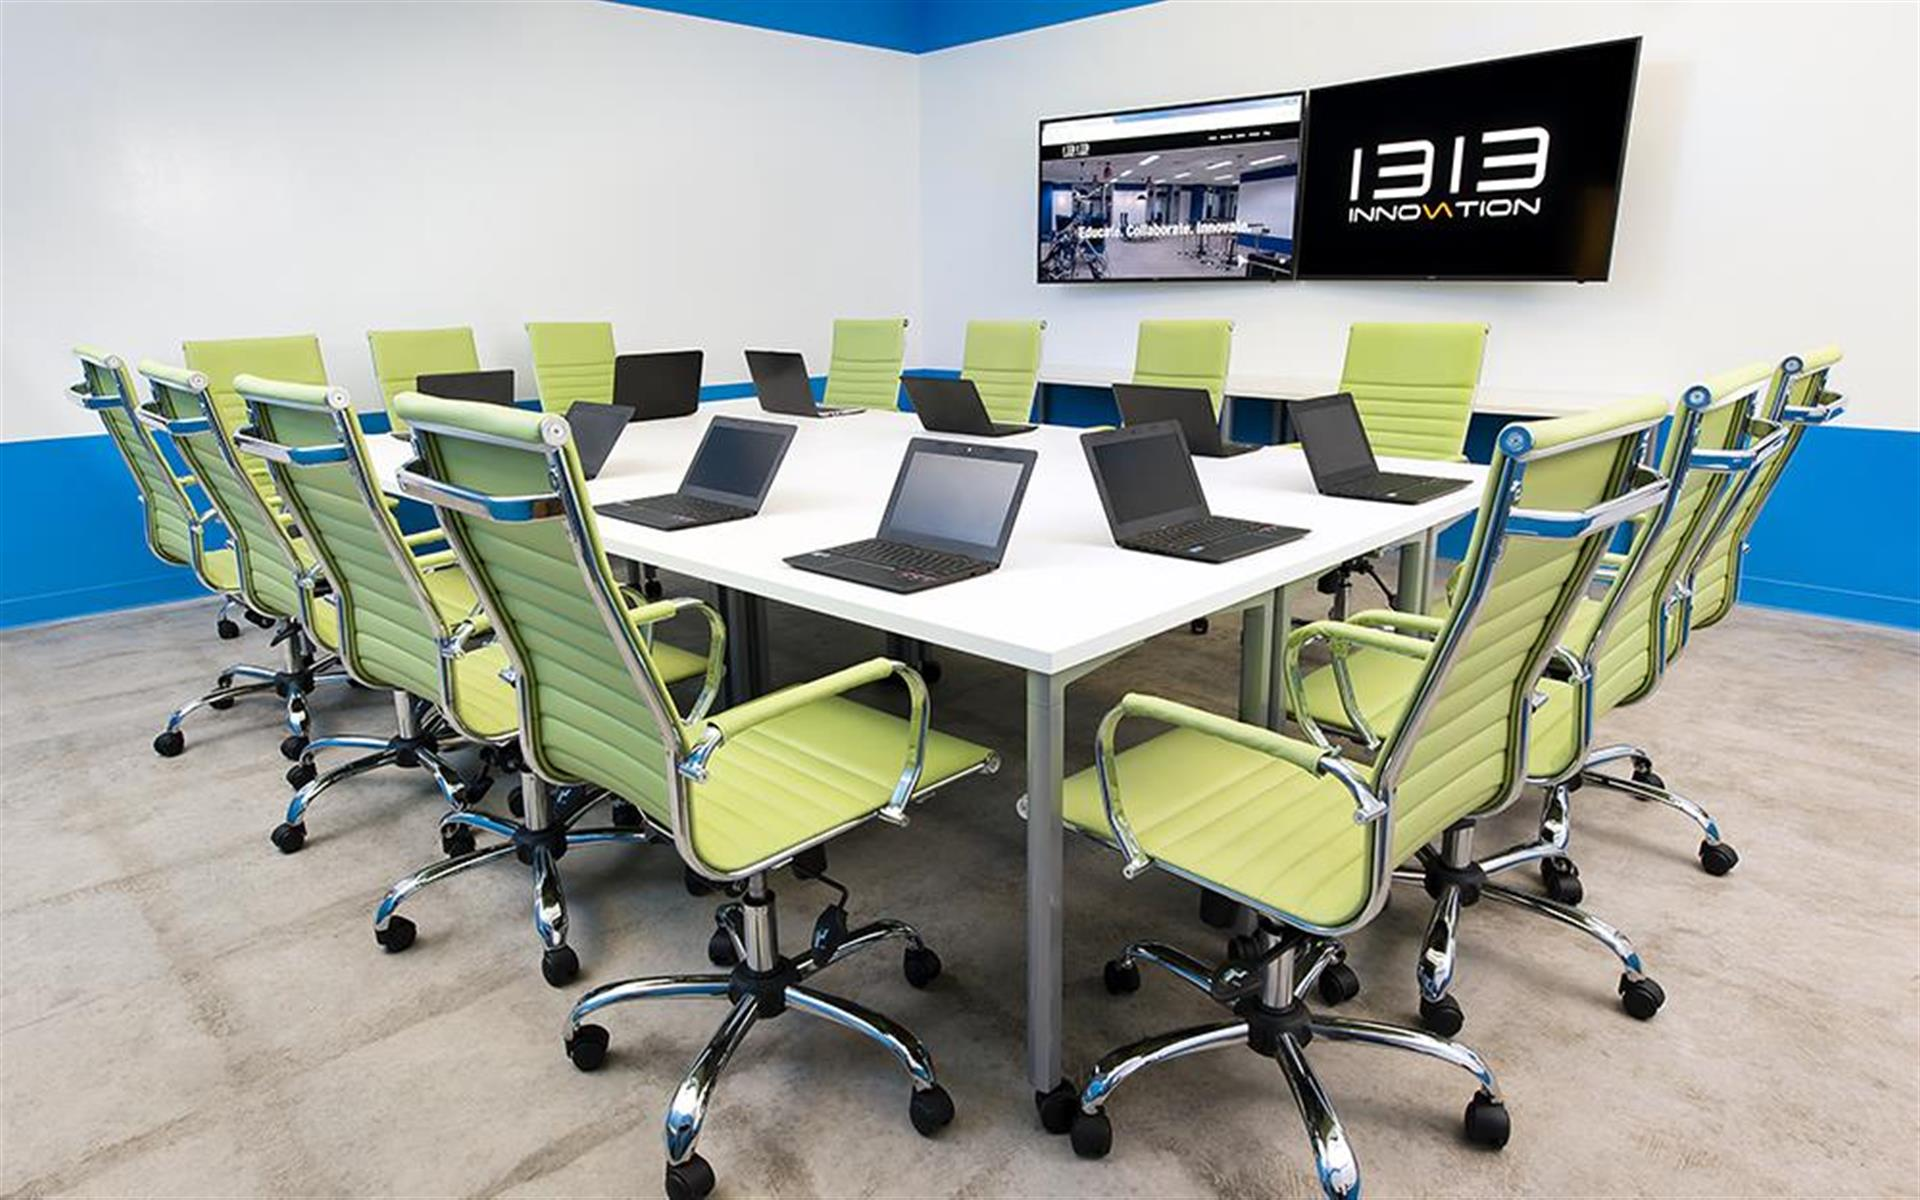 1313 Innovation - Training room - Smart TV